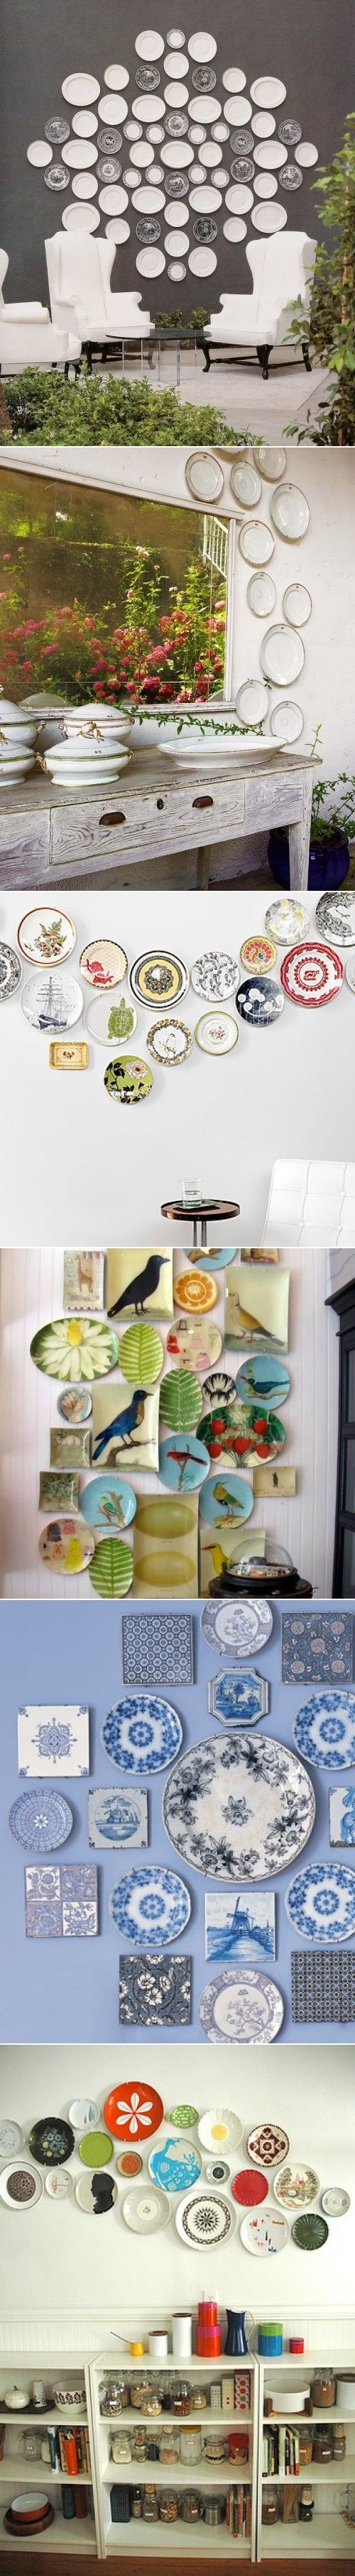 25 best ideas about plate collage on pinterest plate for Collage mural ideas